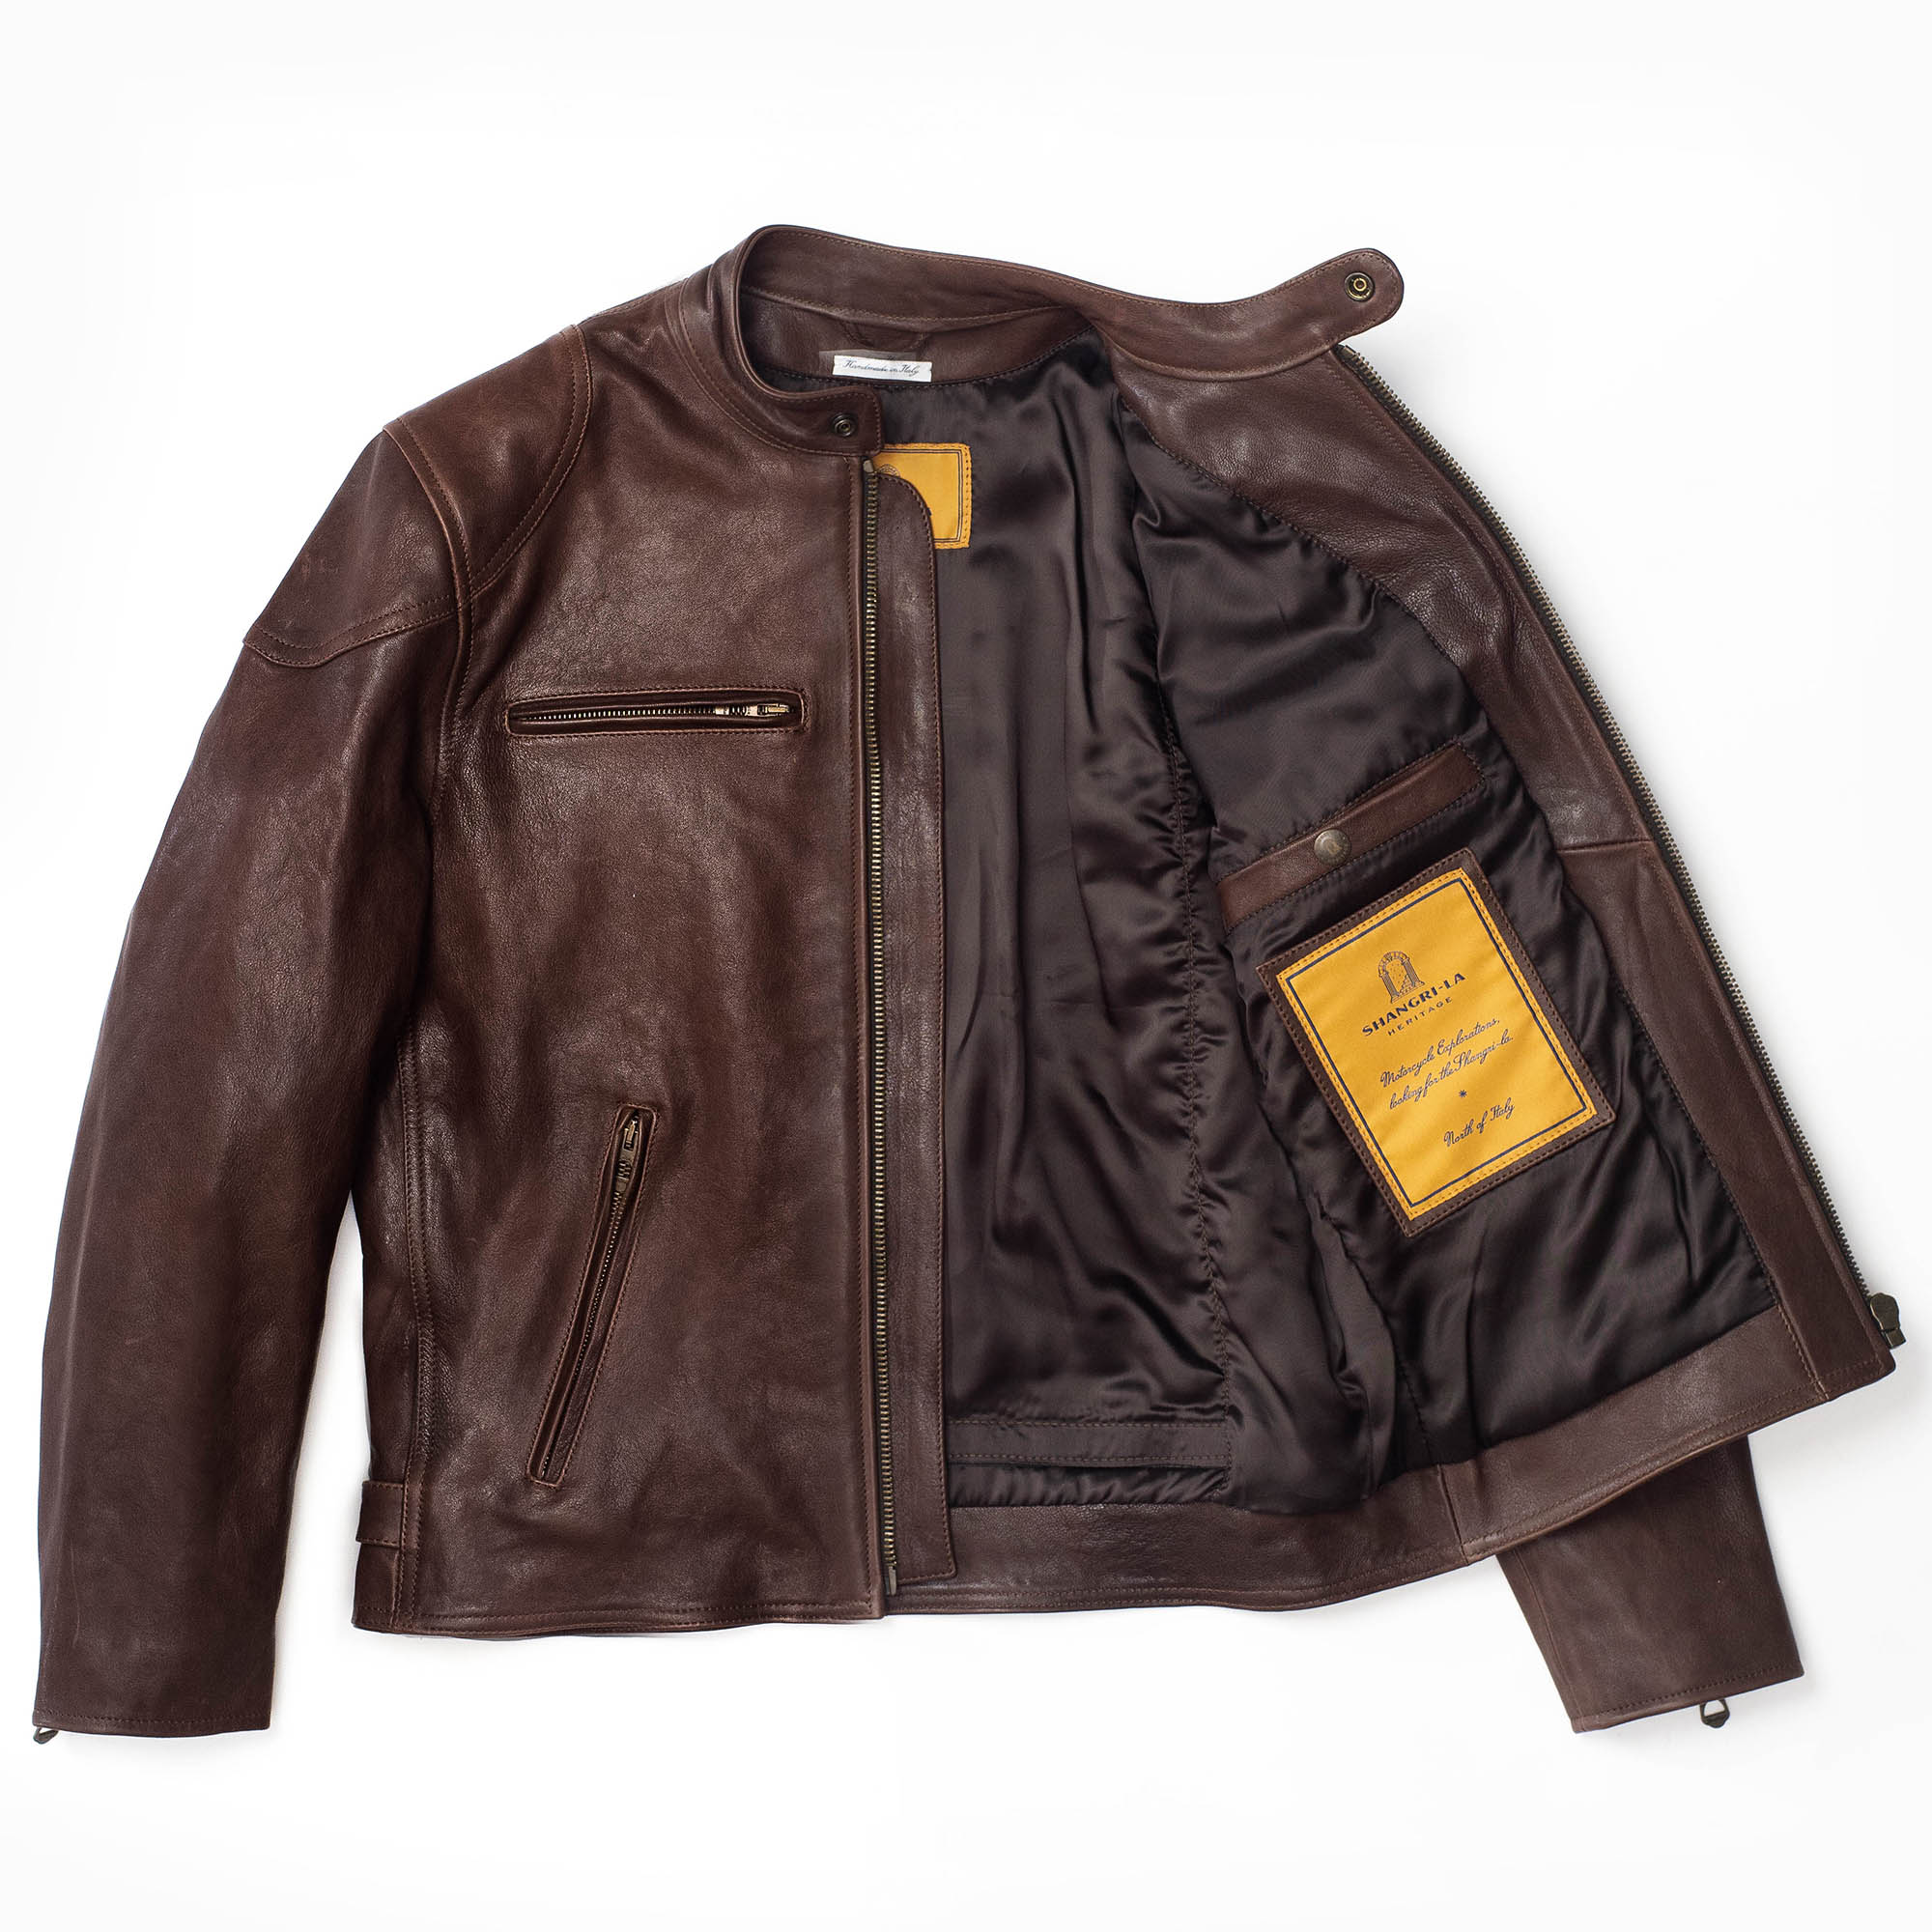 shangri-la-heritage-cafe-racer-brown-lambskin-jacket-still-life-new-open